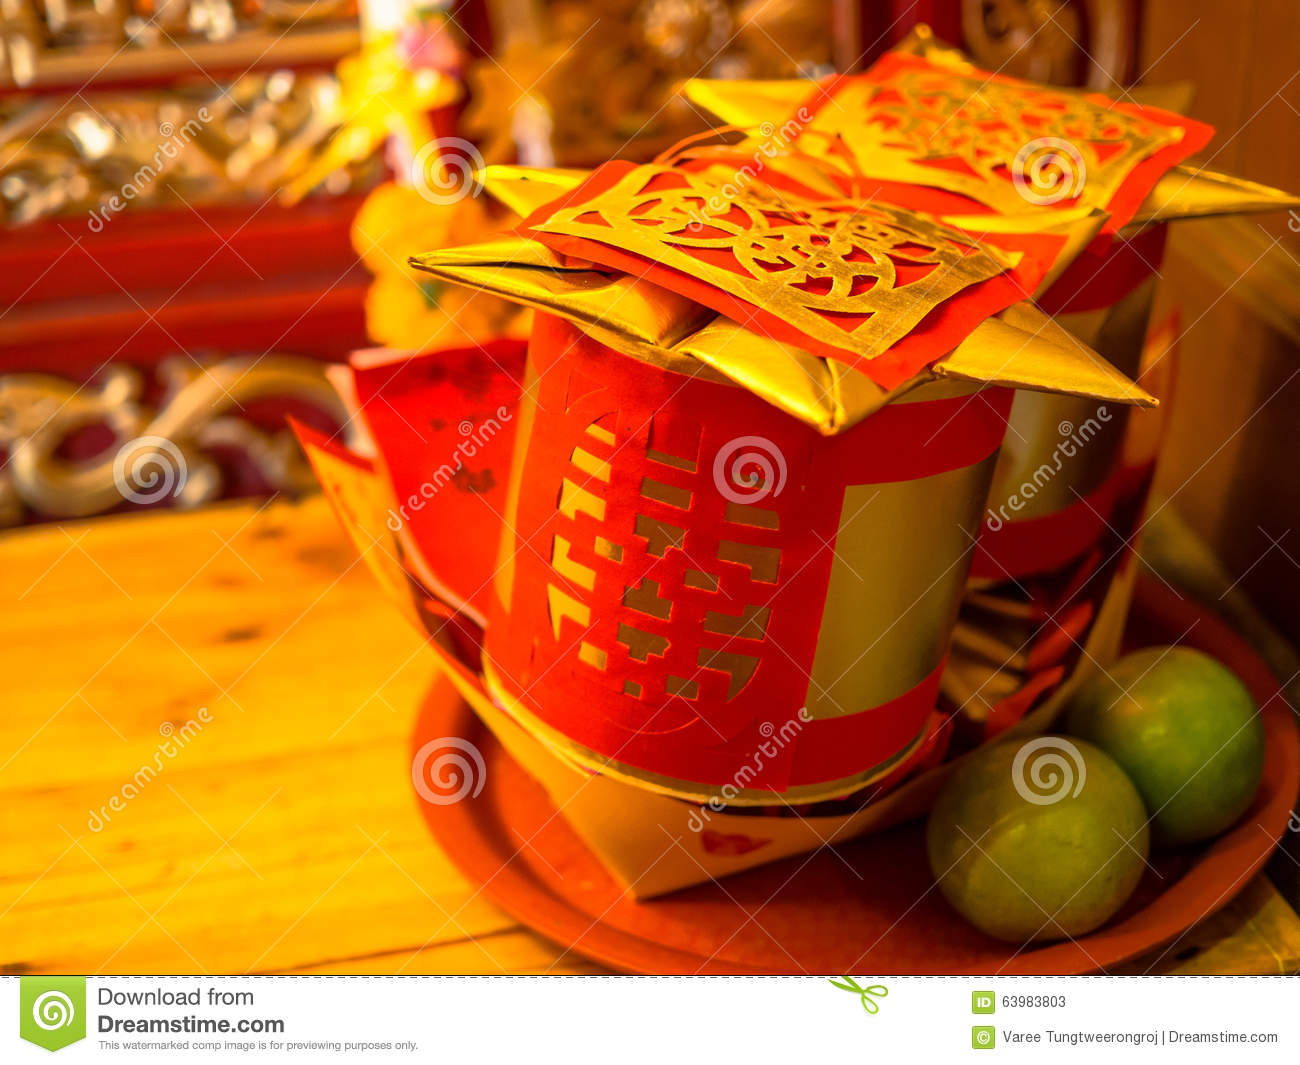 monks money ambiguous essay This webpage is for dr wheeler's literature students, and it offers introductory survey information concerning the literature of classical china, classical rome.